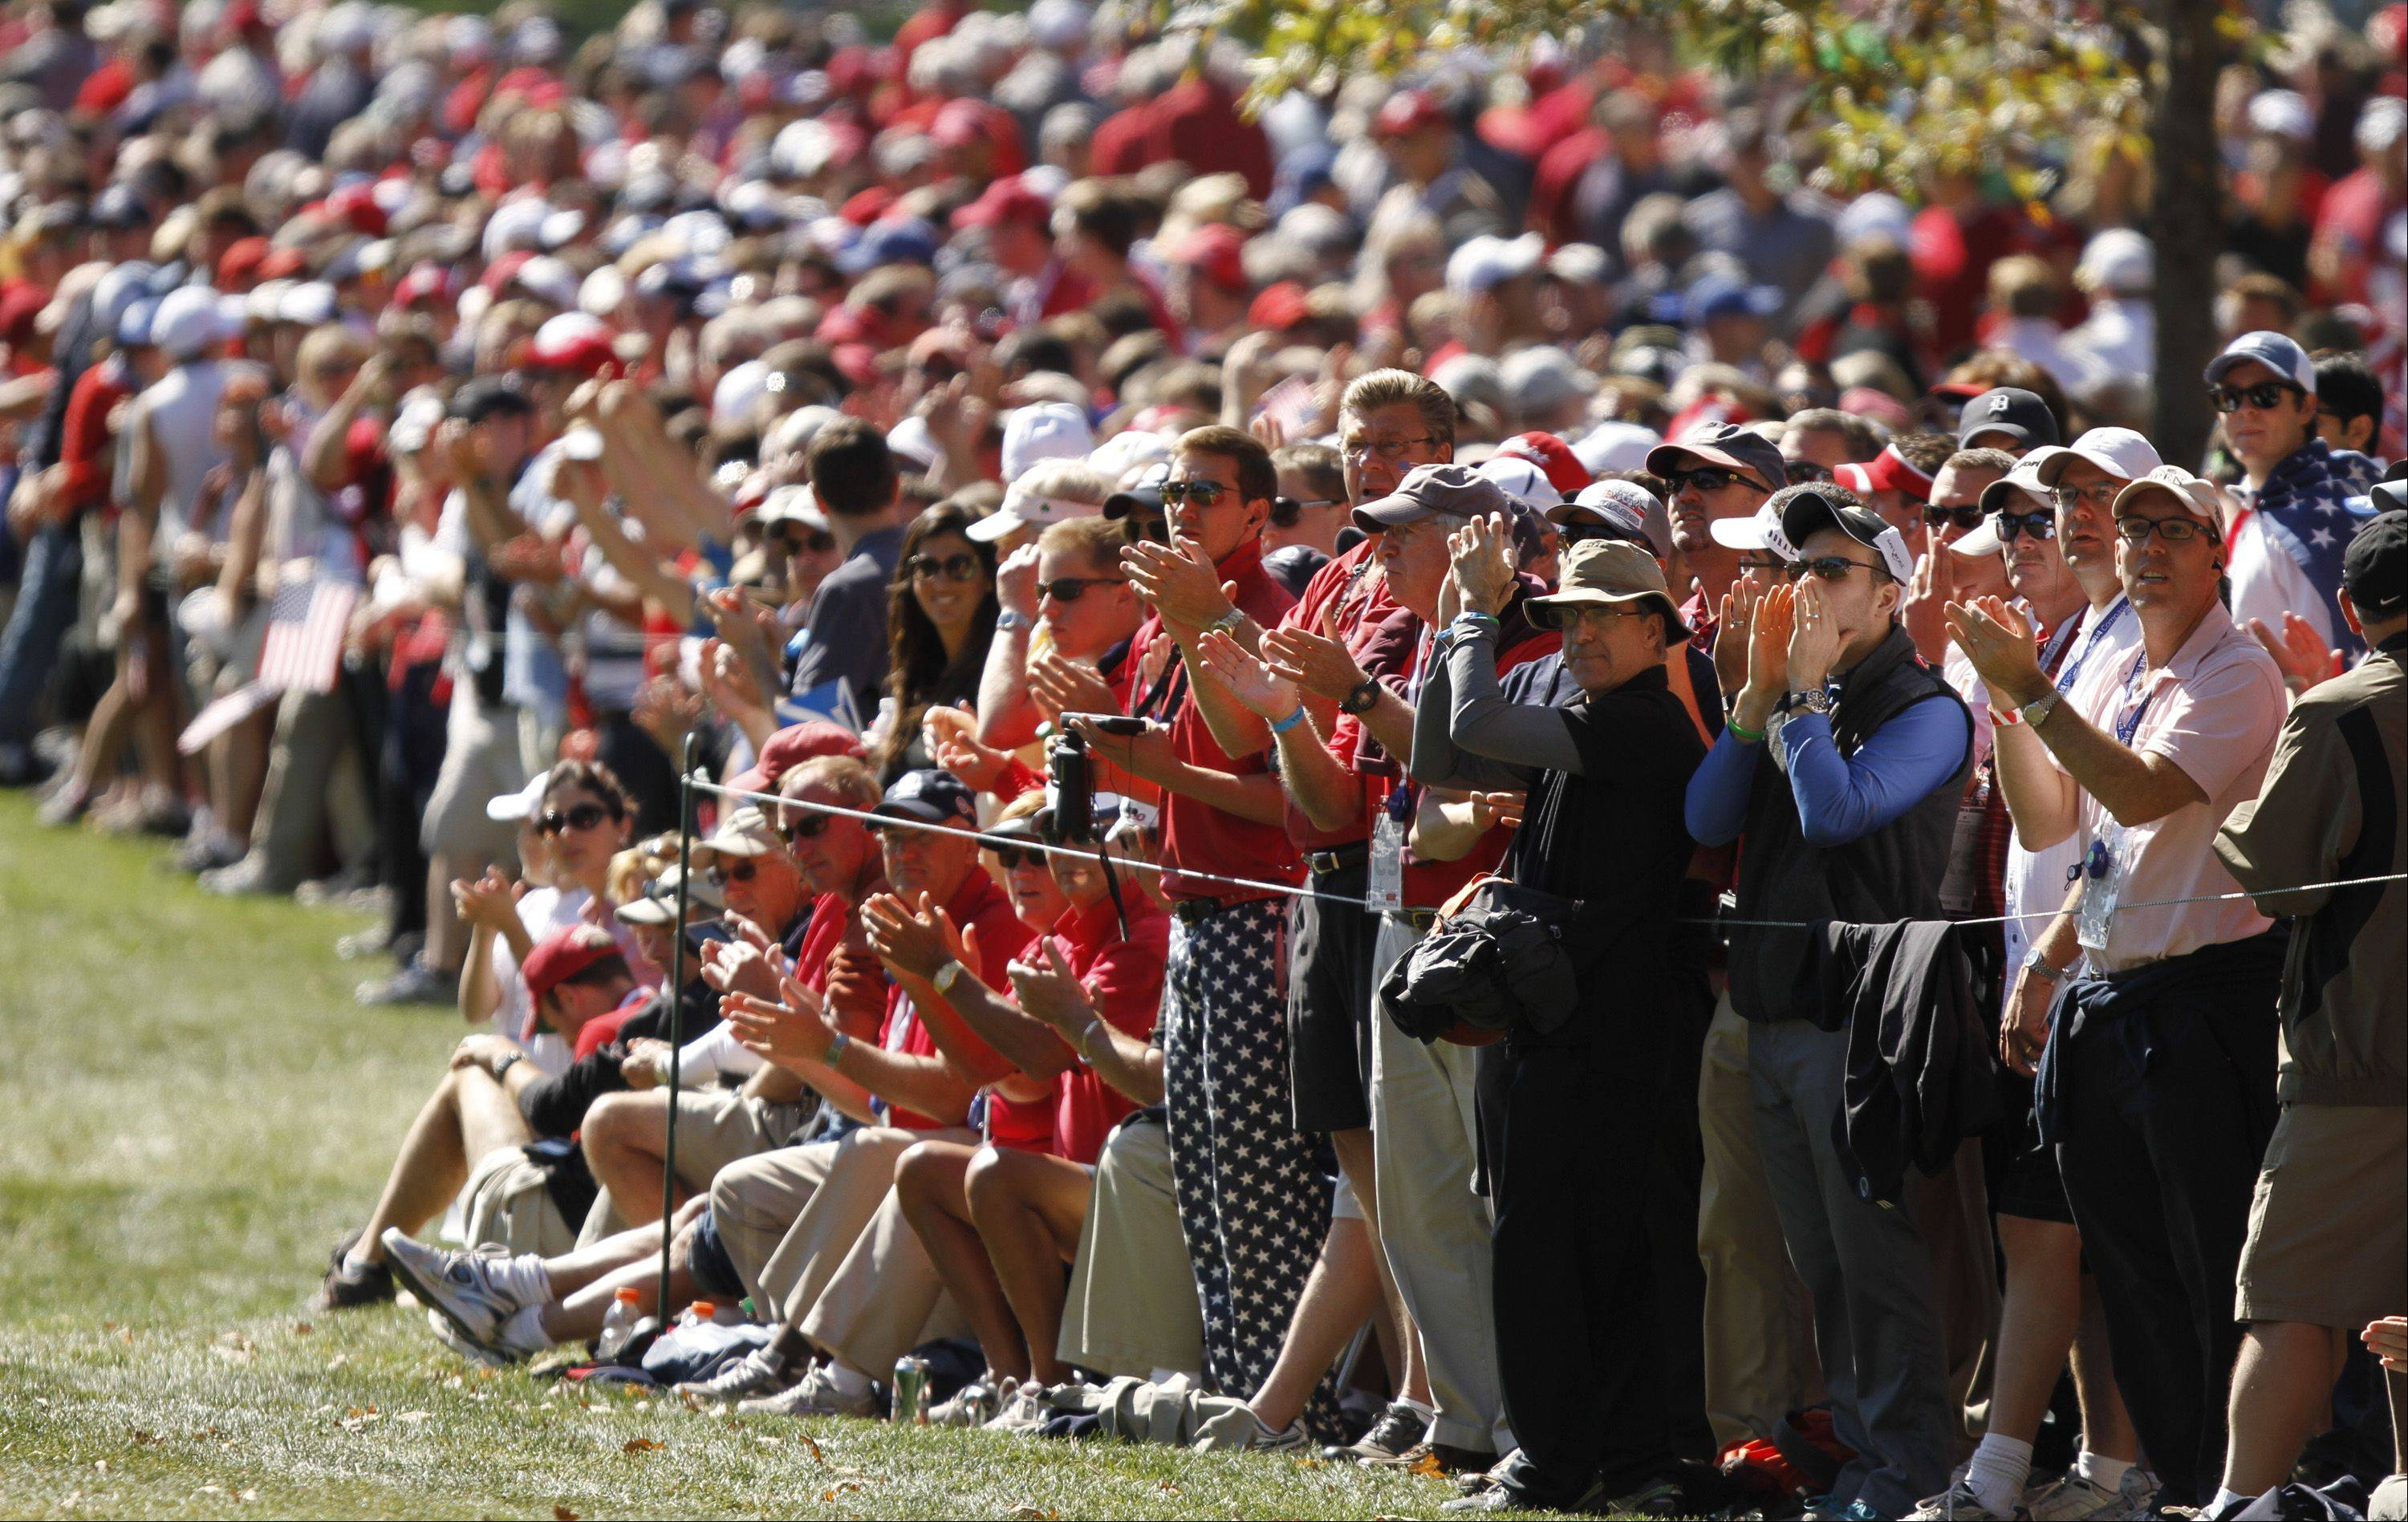 Crowds were jammed along the rope lines all day in Medinah to watch the singles matches of the Ryder Cup.